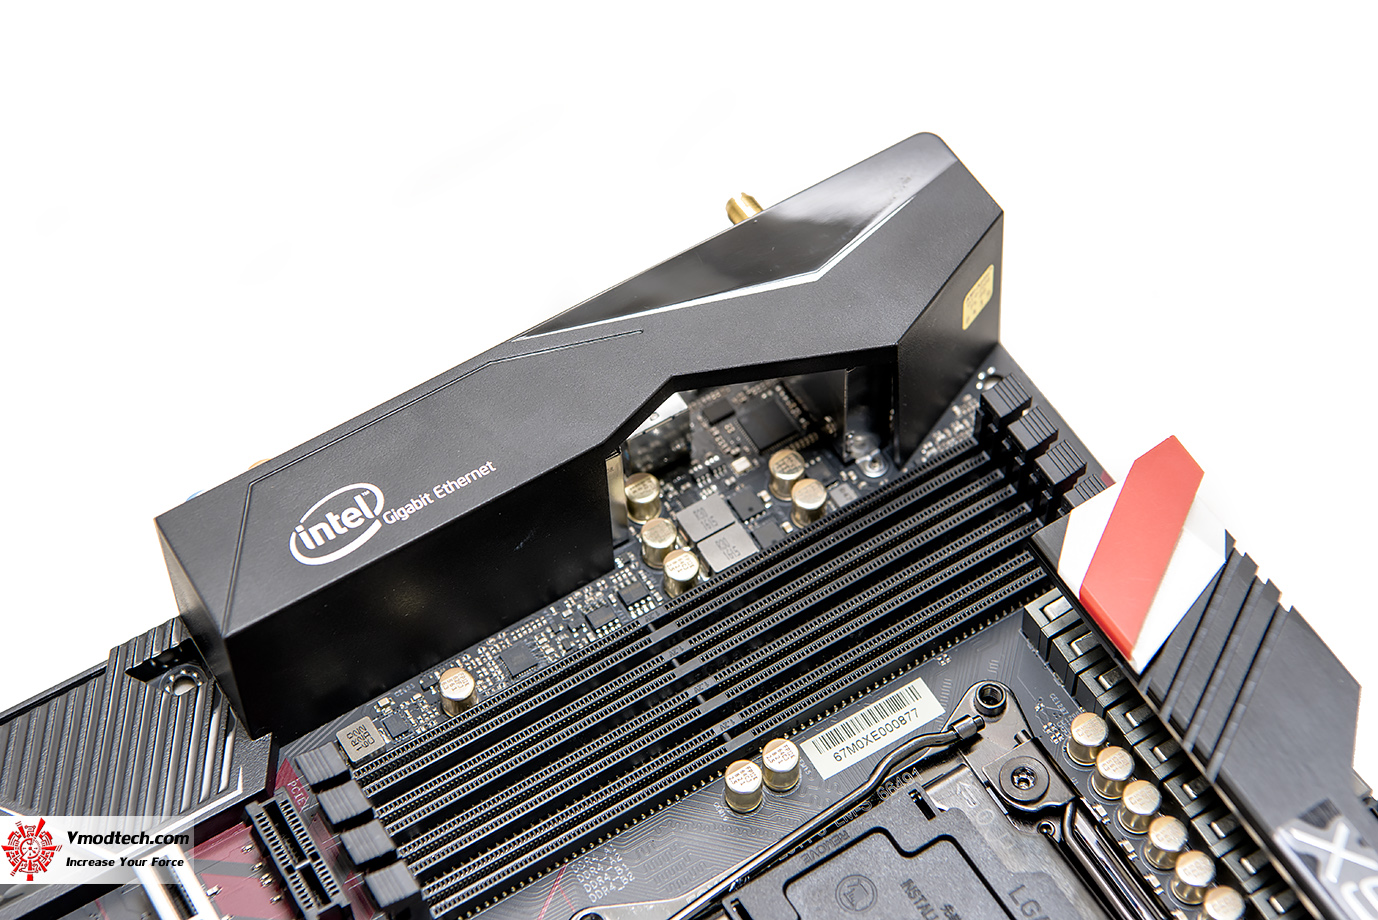 dsc 1975 ASRock Fatal1ty X99 Professional Gaming i7 Motherboard Review